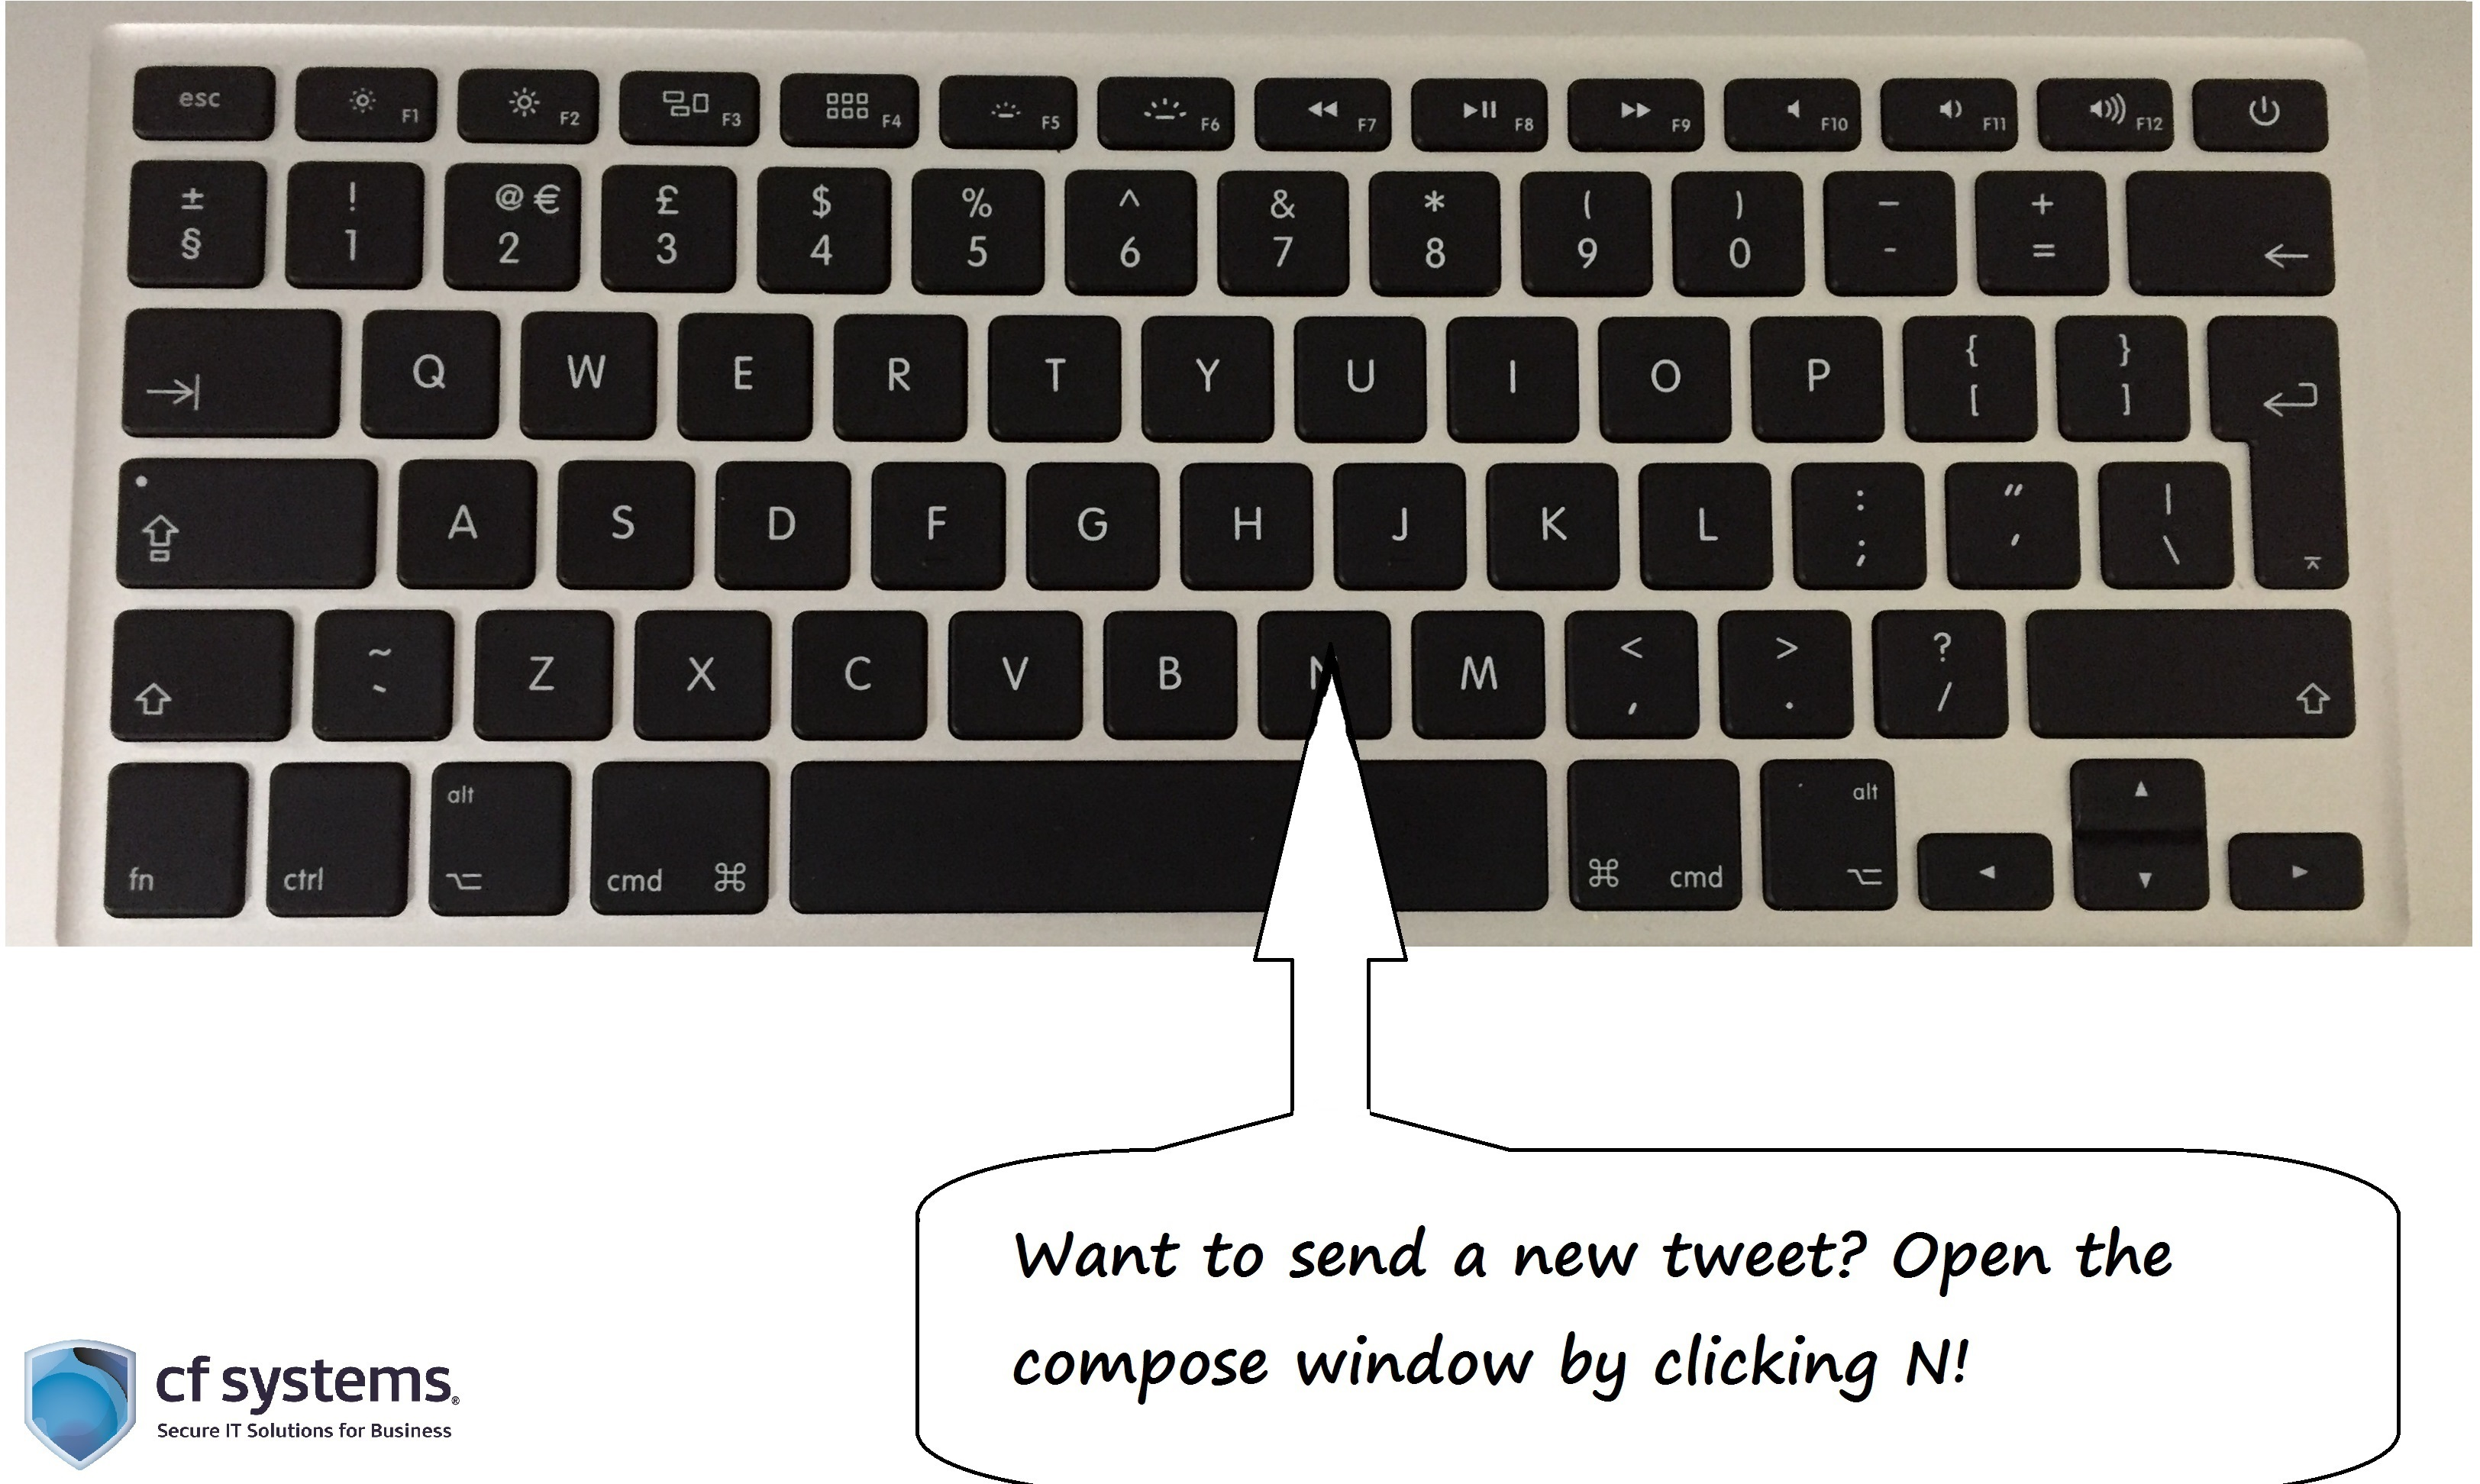 Twitter shortcuts! Do you know how to send a tweet from your keyboard?